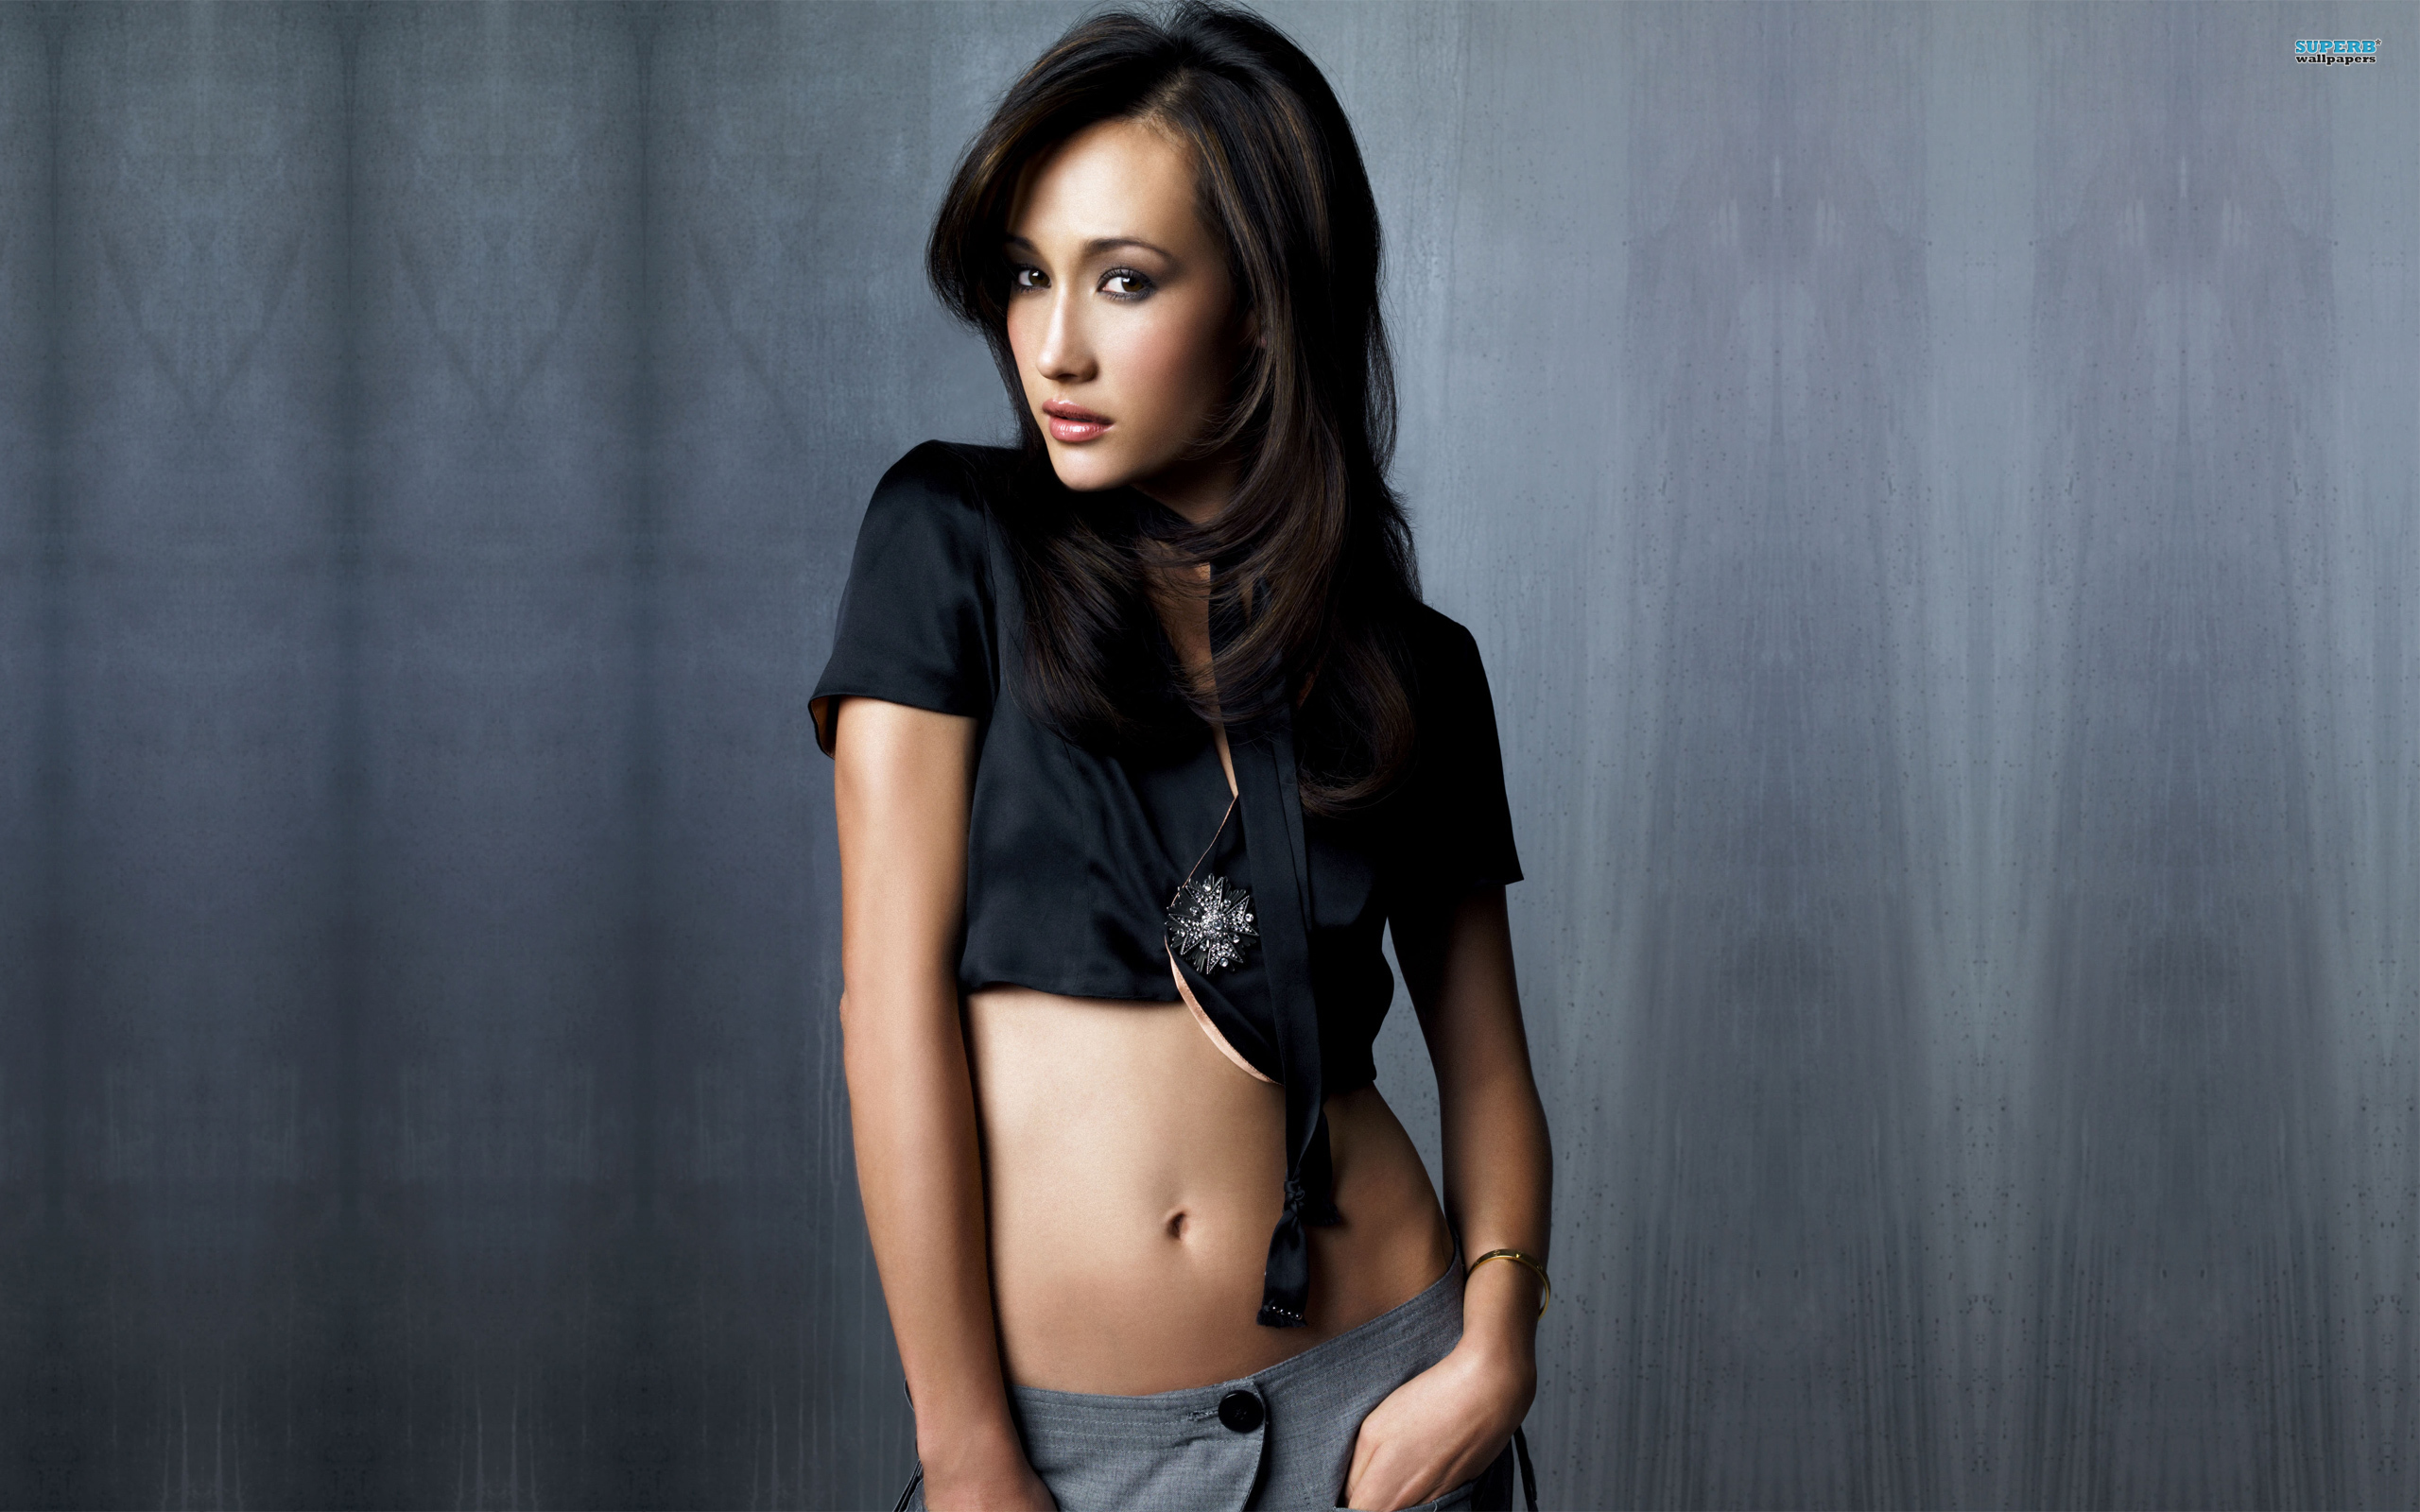 2560x1600 - Maggie Q Wallpapers 8